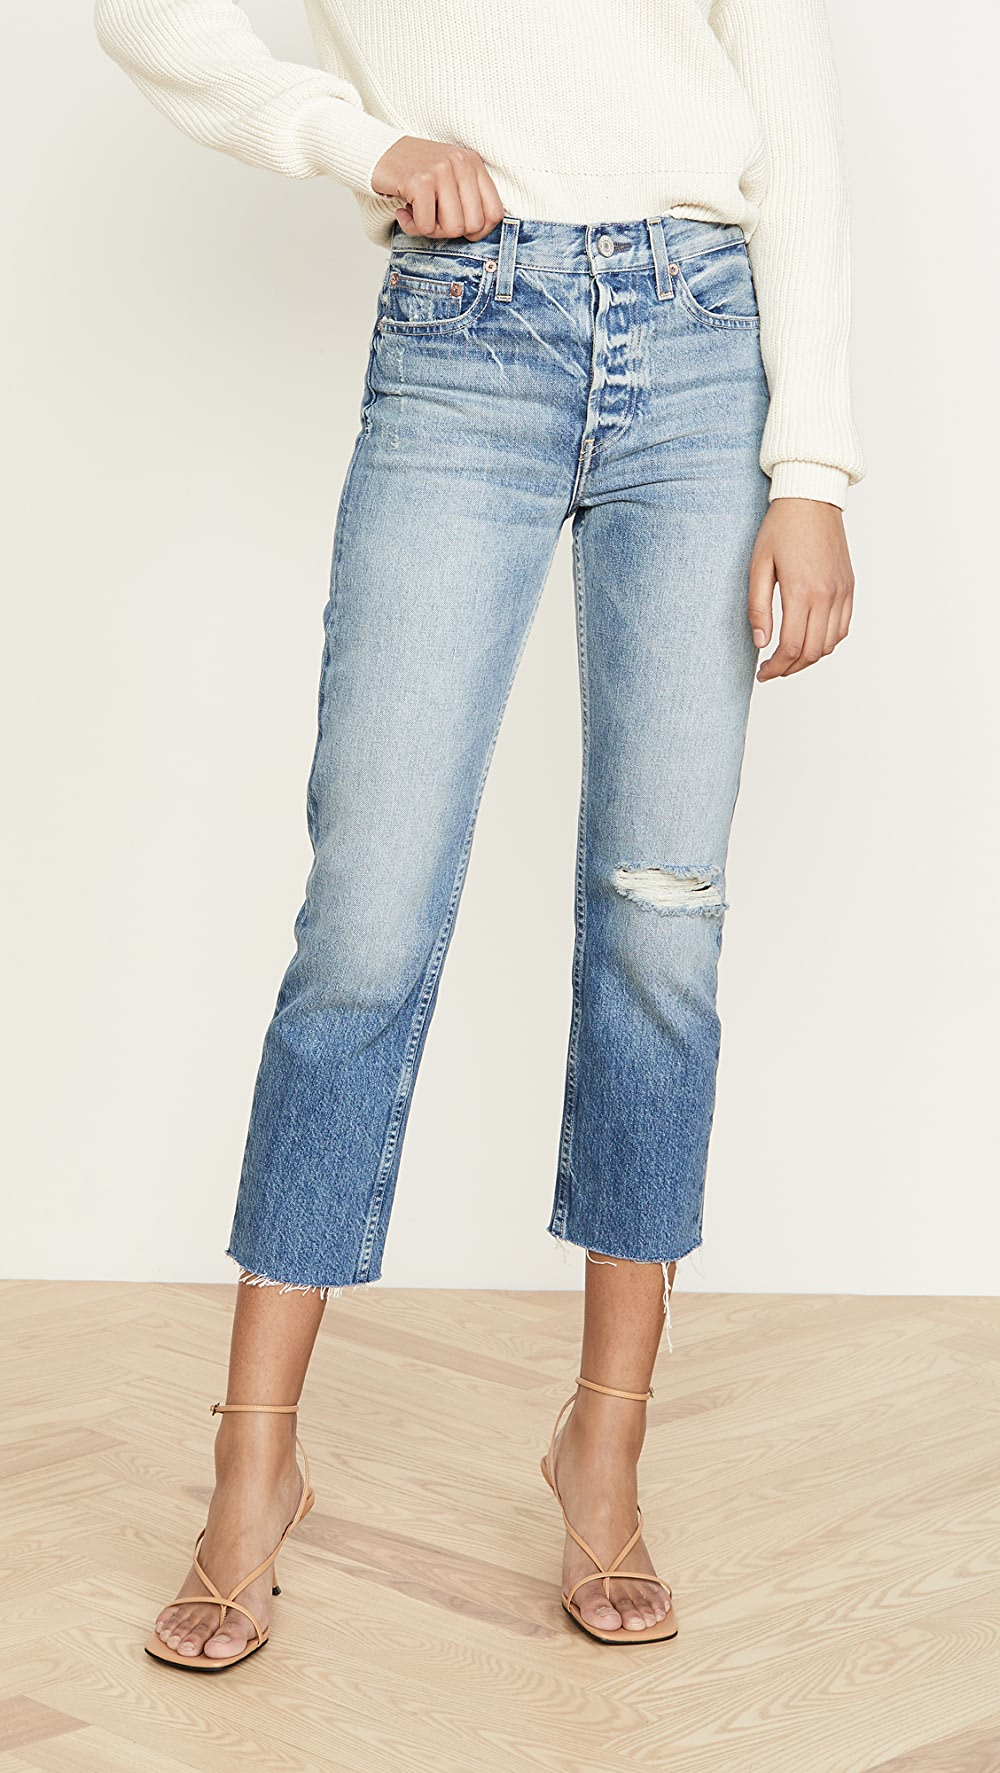 2019 Fashion Trave - Constance Cropped Straight Jeans Yet Not Vulgar